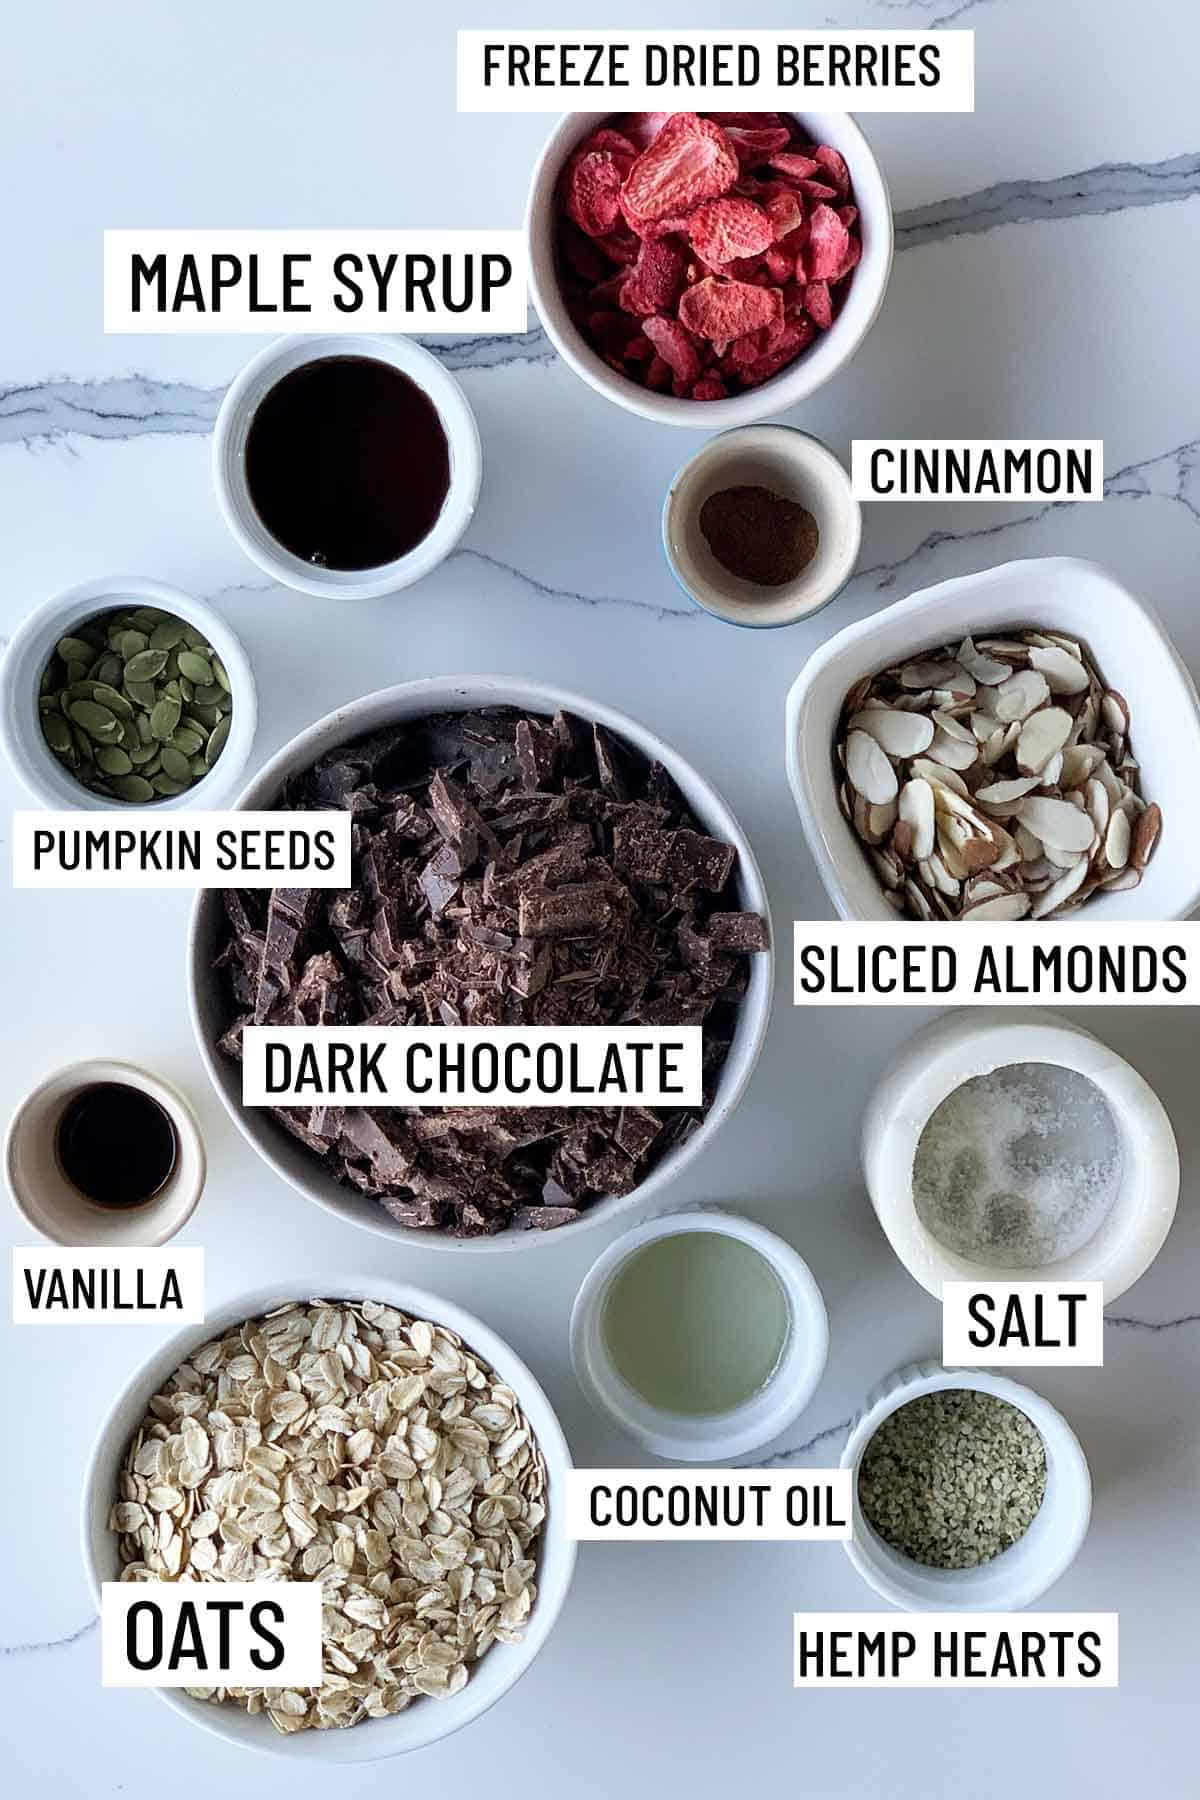 Birds eye view of portioned recipe ingredients for almond chocolate bark including freeze dried berries, maple syrup, cinnamon, pumpkin seeds, sliced almonds, dark chocolate, salt, vanilla, oats, coconut oil, and hemp hearts.